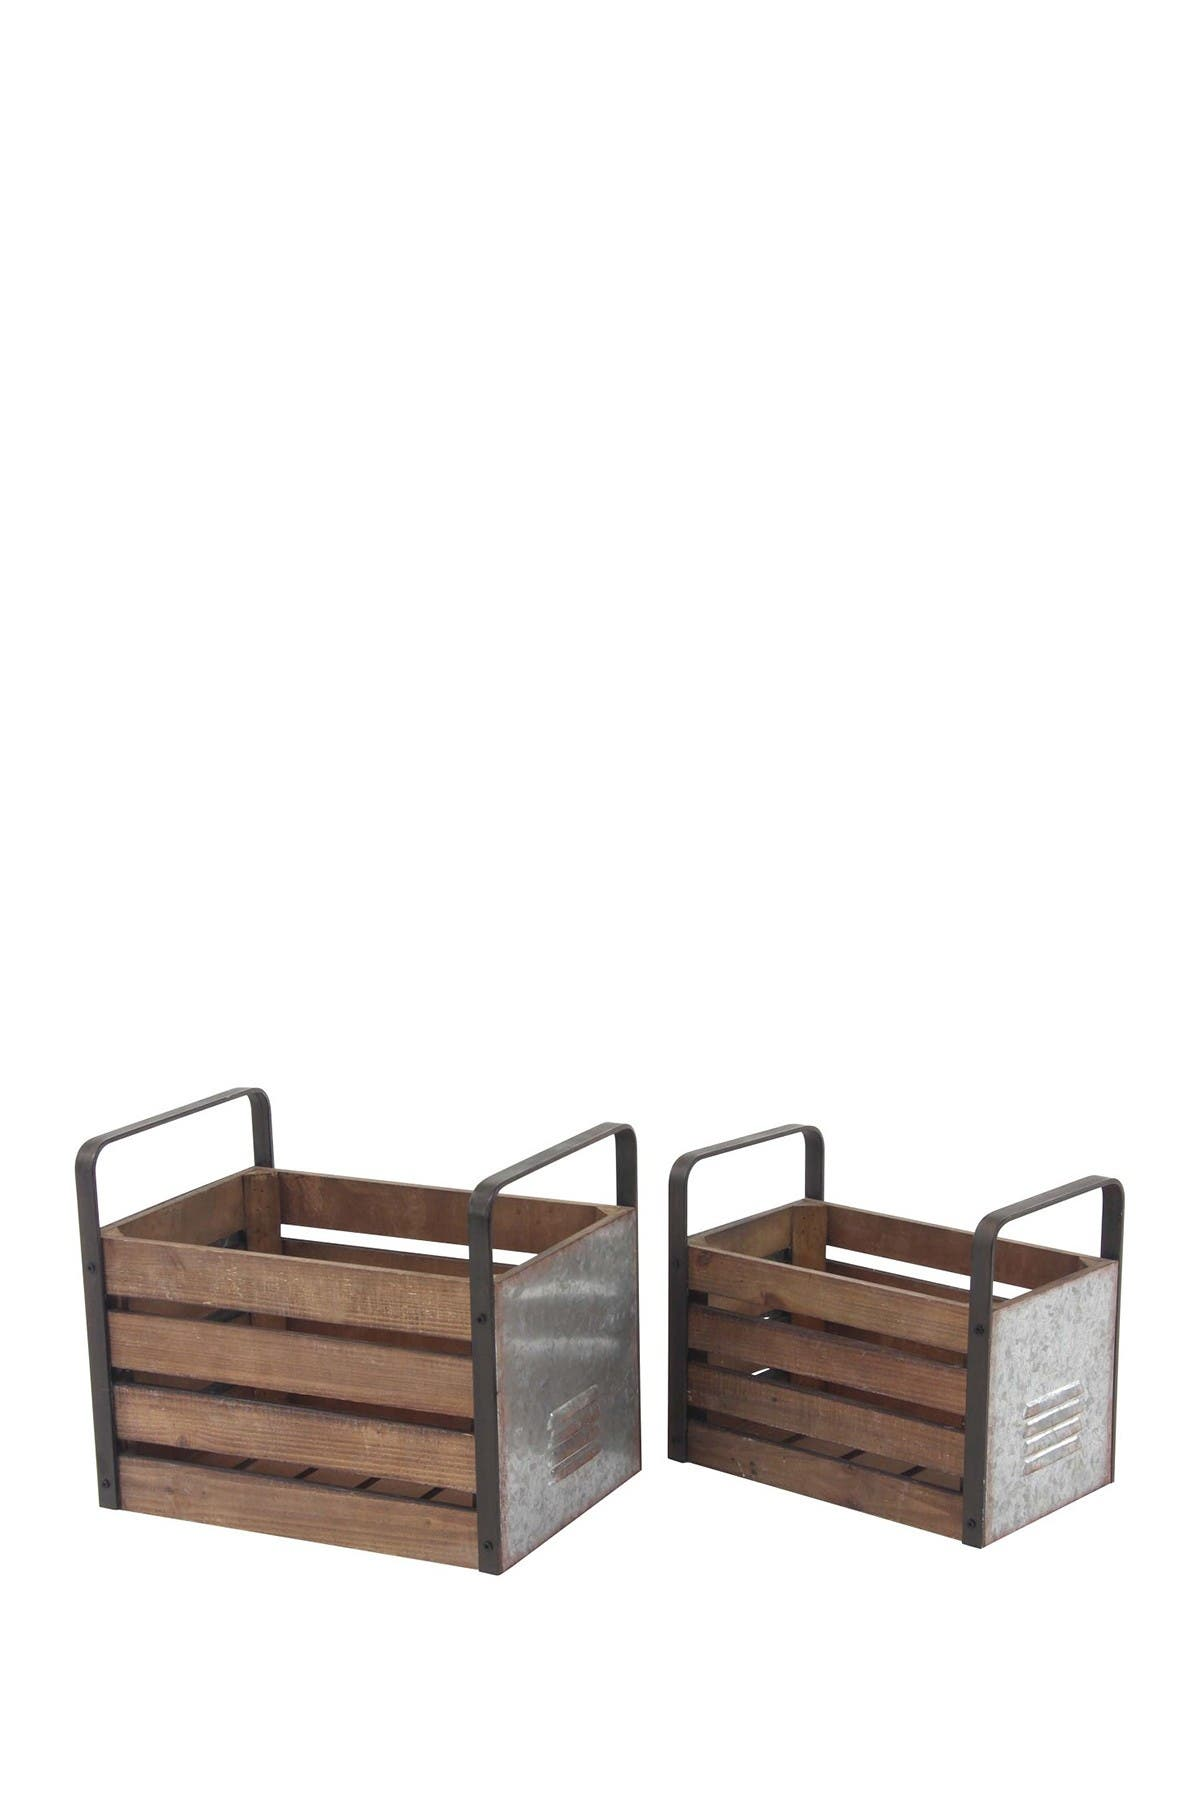 Image of Willow Row Beige Rustic Wood & Iron Slat Storage Crate - Set of 2